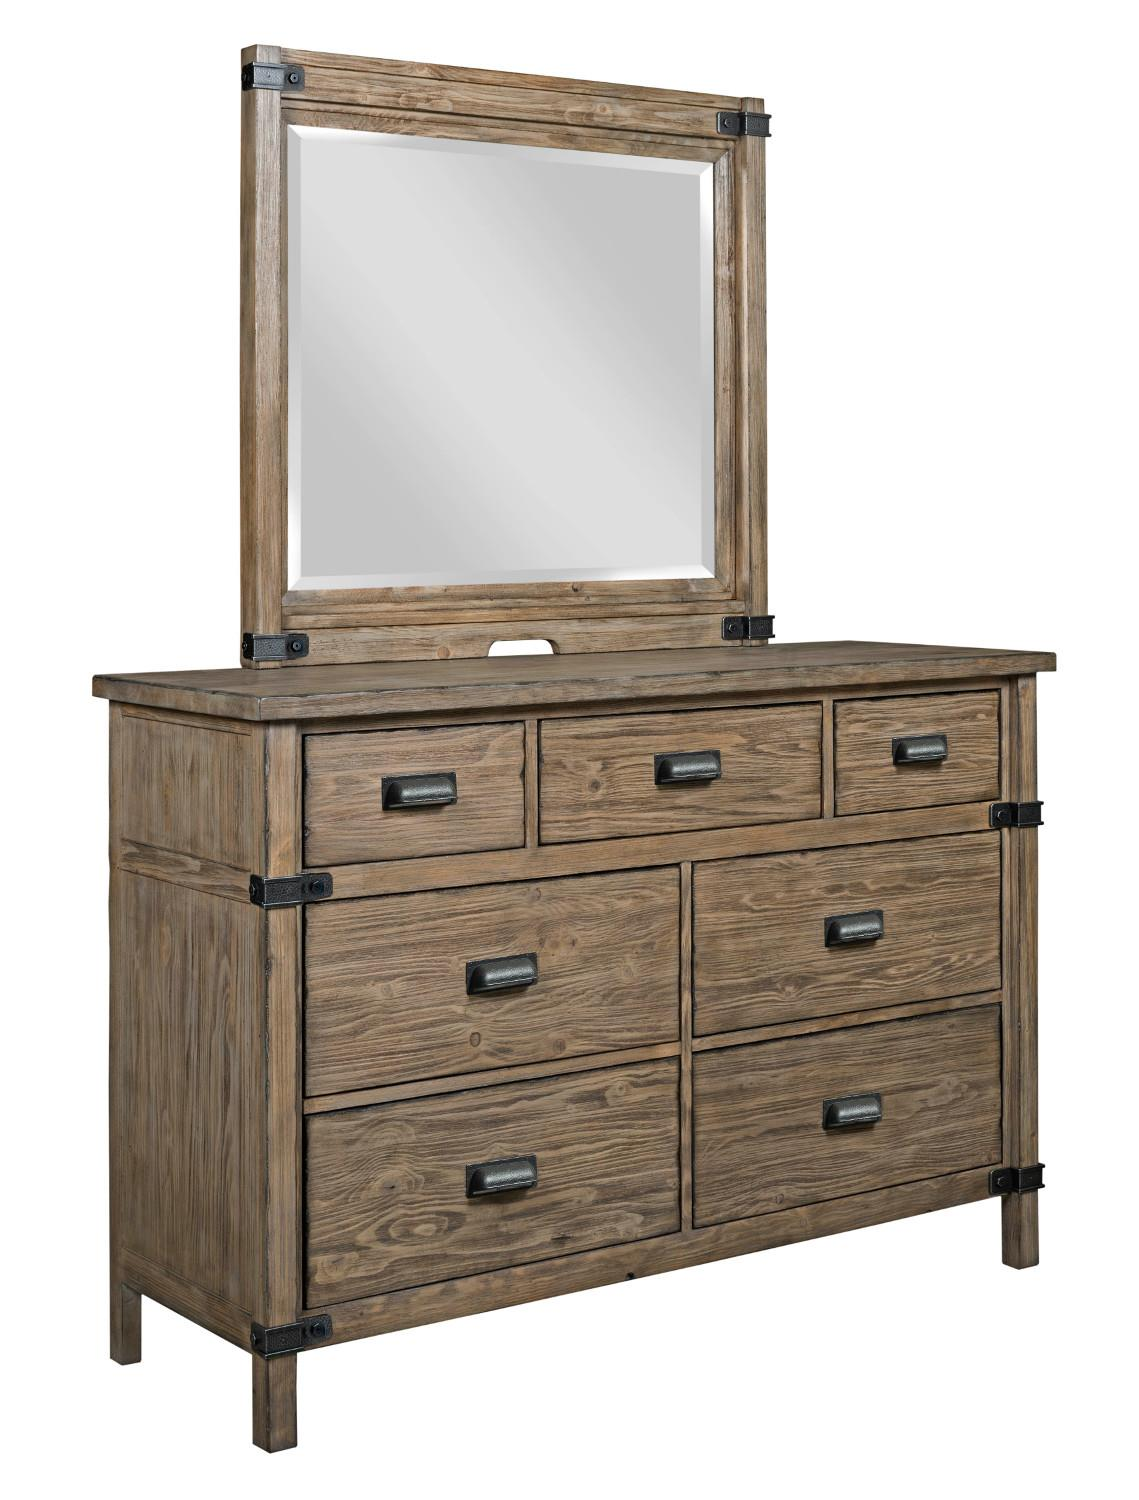 kincaid furniture foundry rustic weathered gray bureau and mirror set olinde 39 s furniture. Black Bedroom Furniture Sets. Home Design Ideas